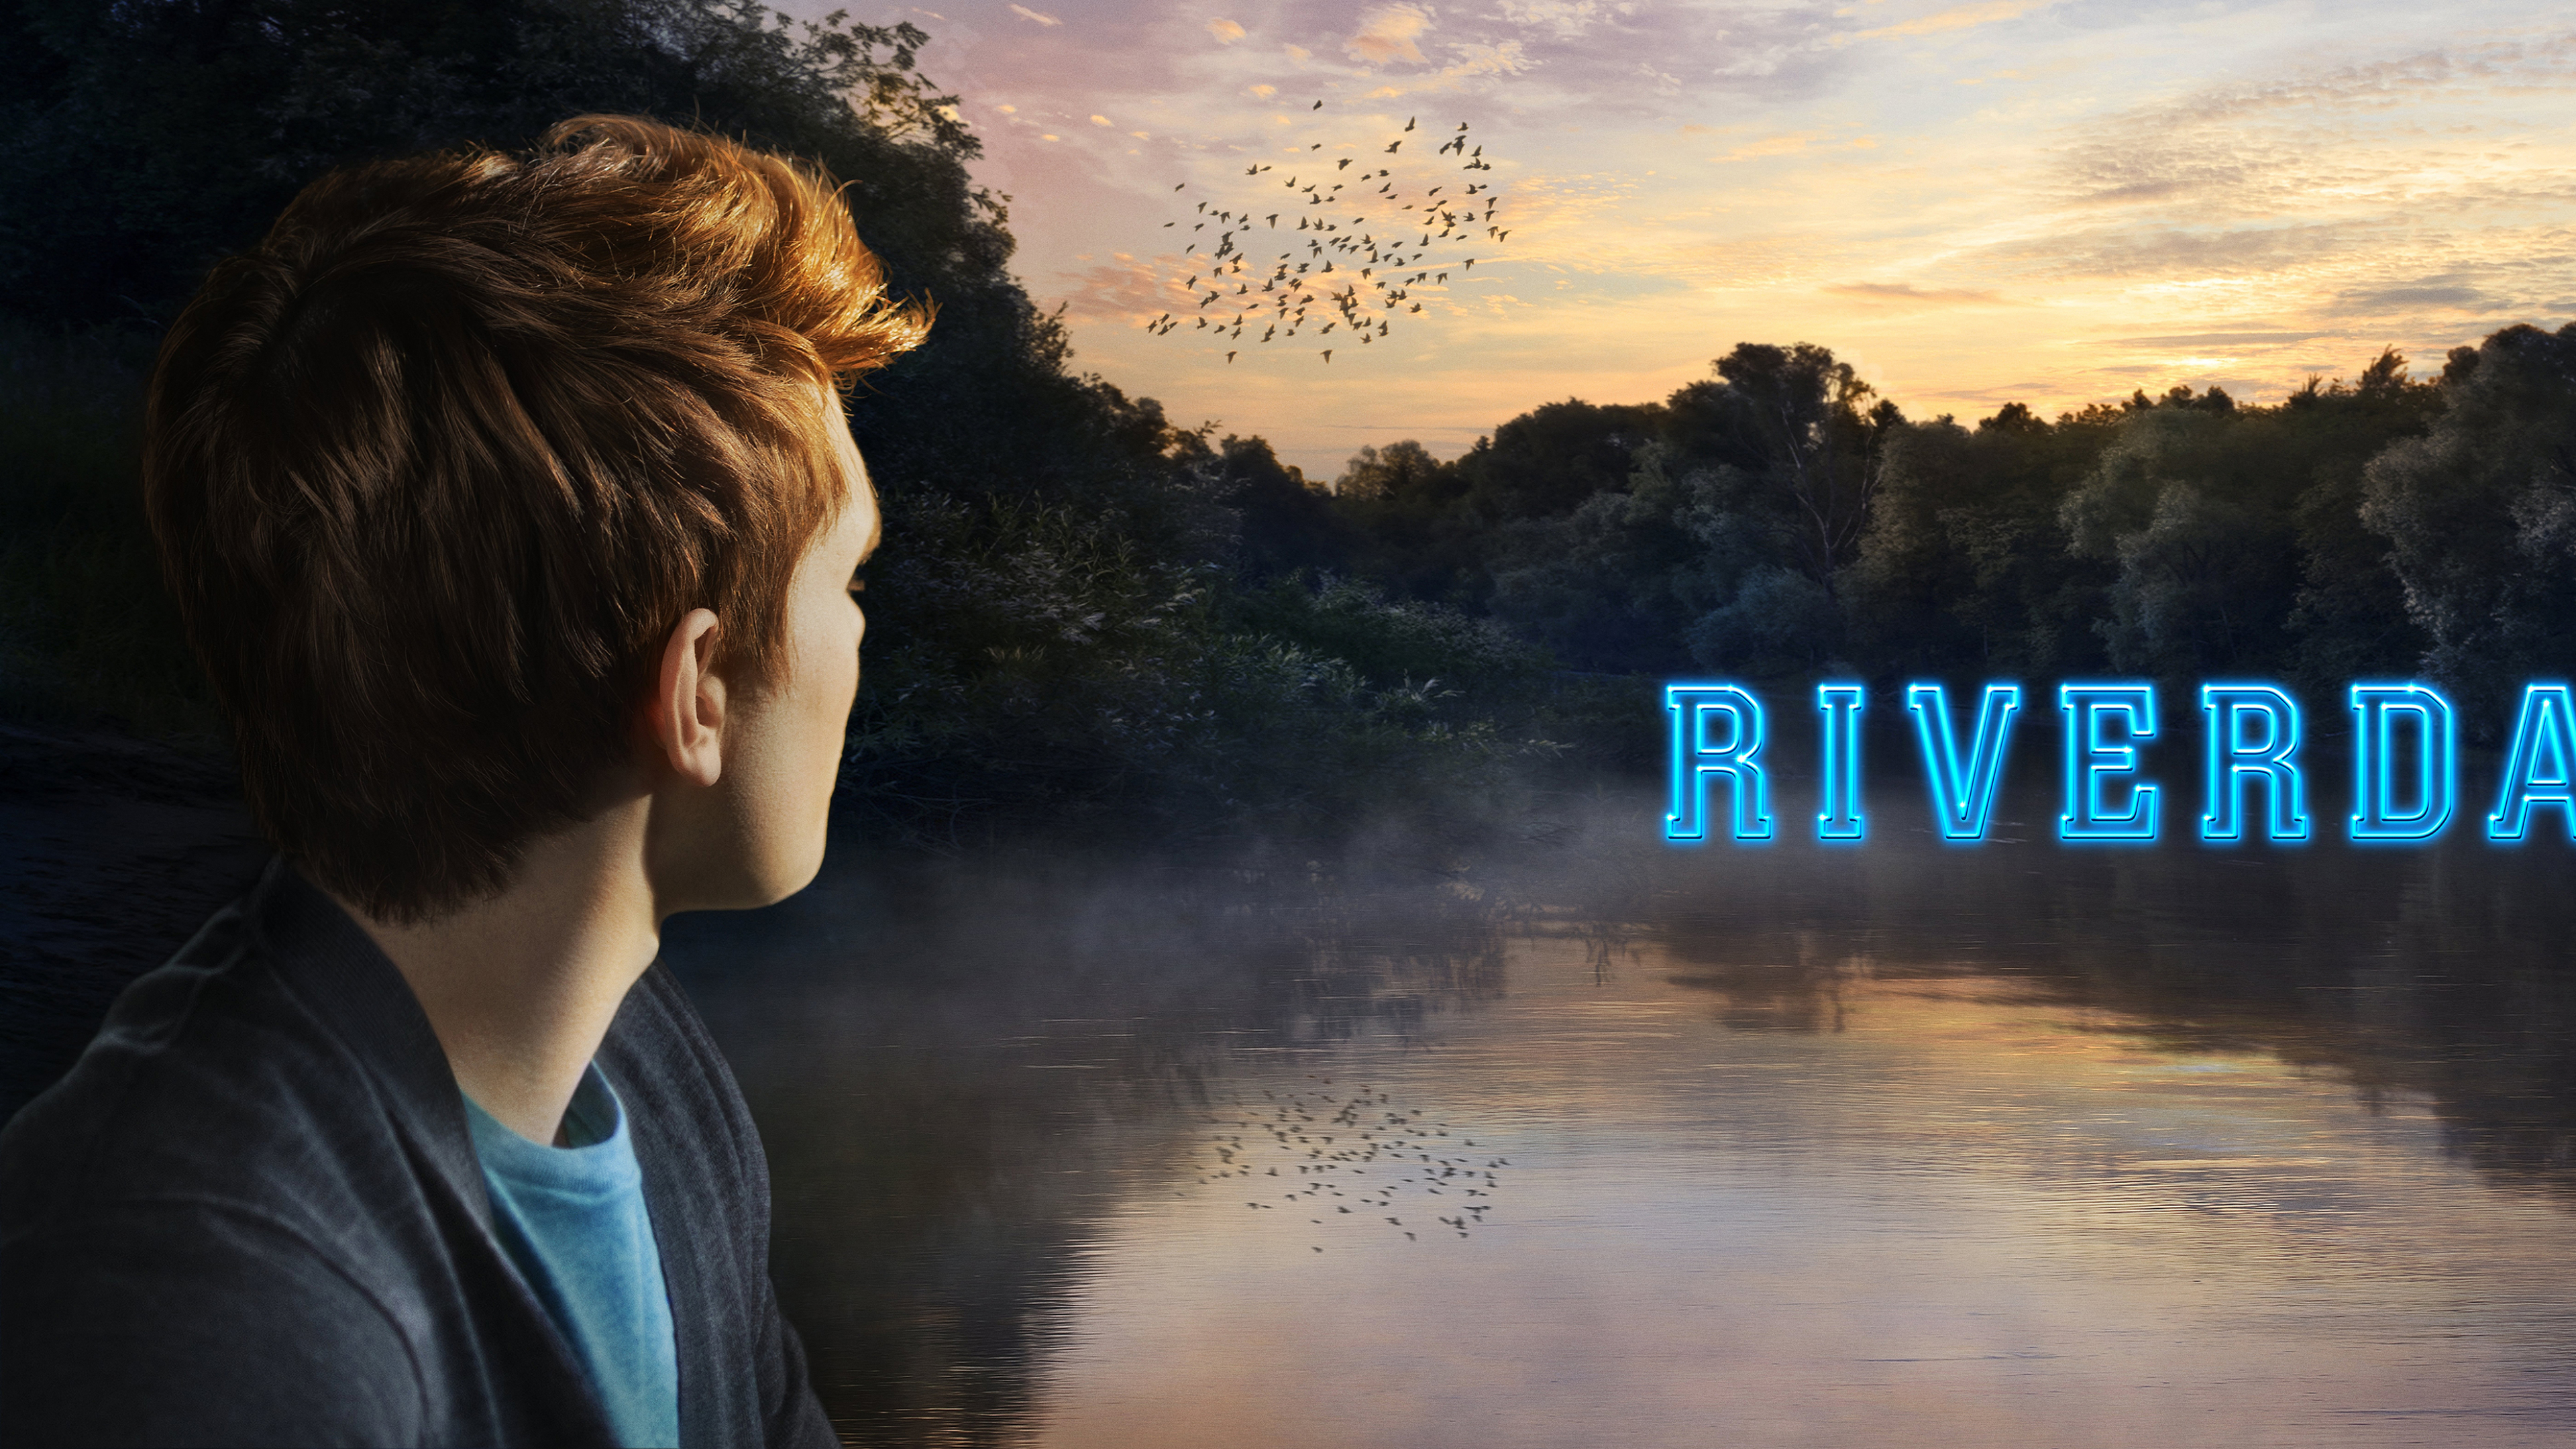 Riverdale Wallpaper: Riverdale, HD 4K Wallpaper